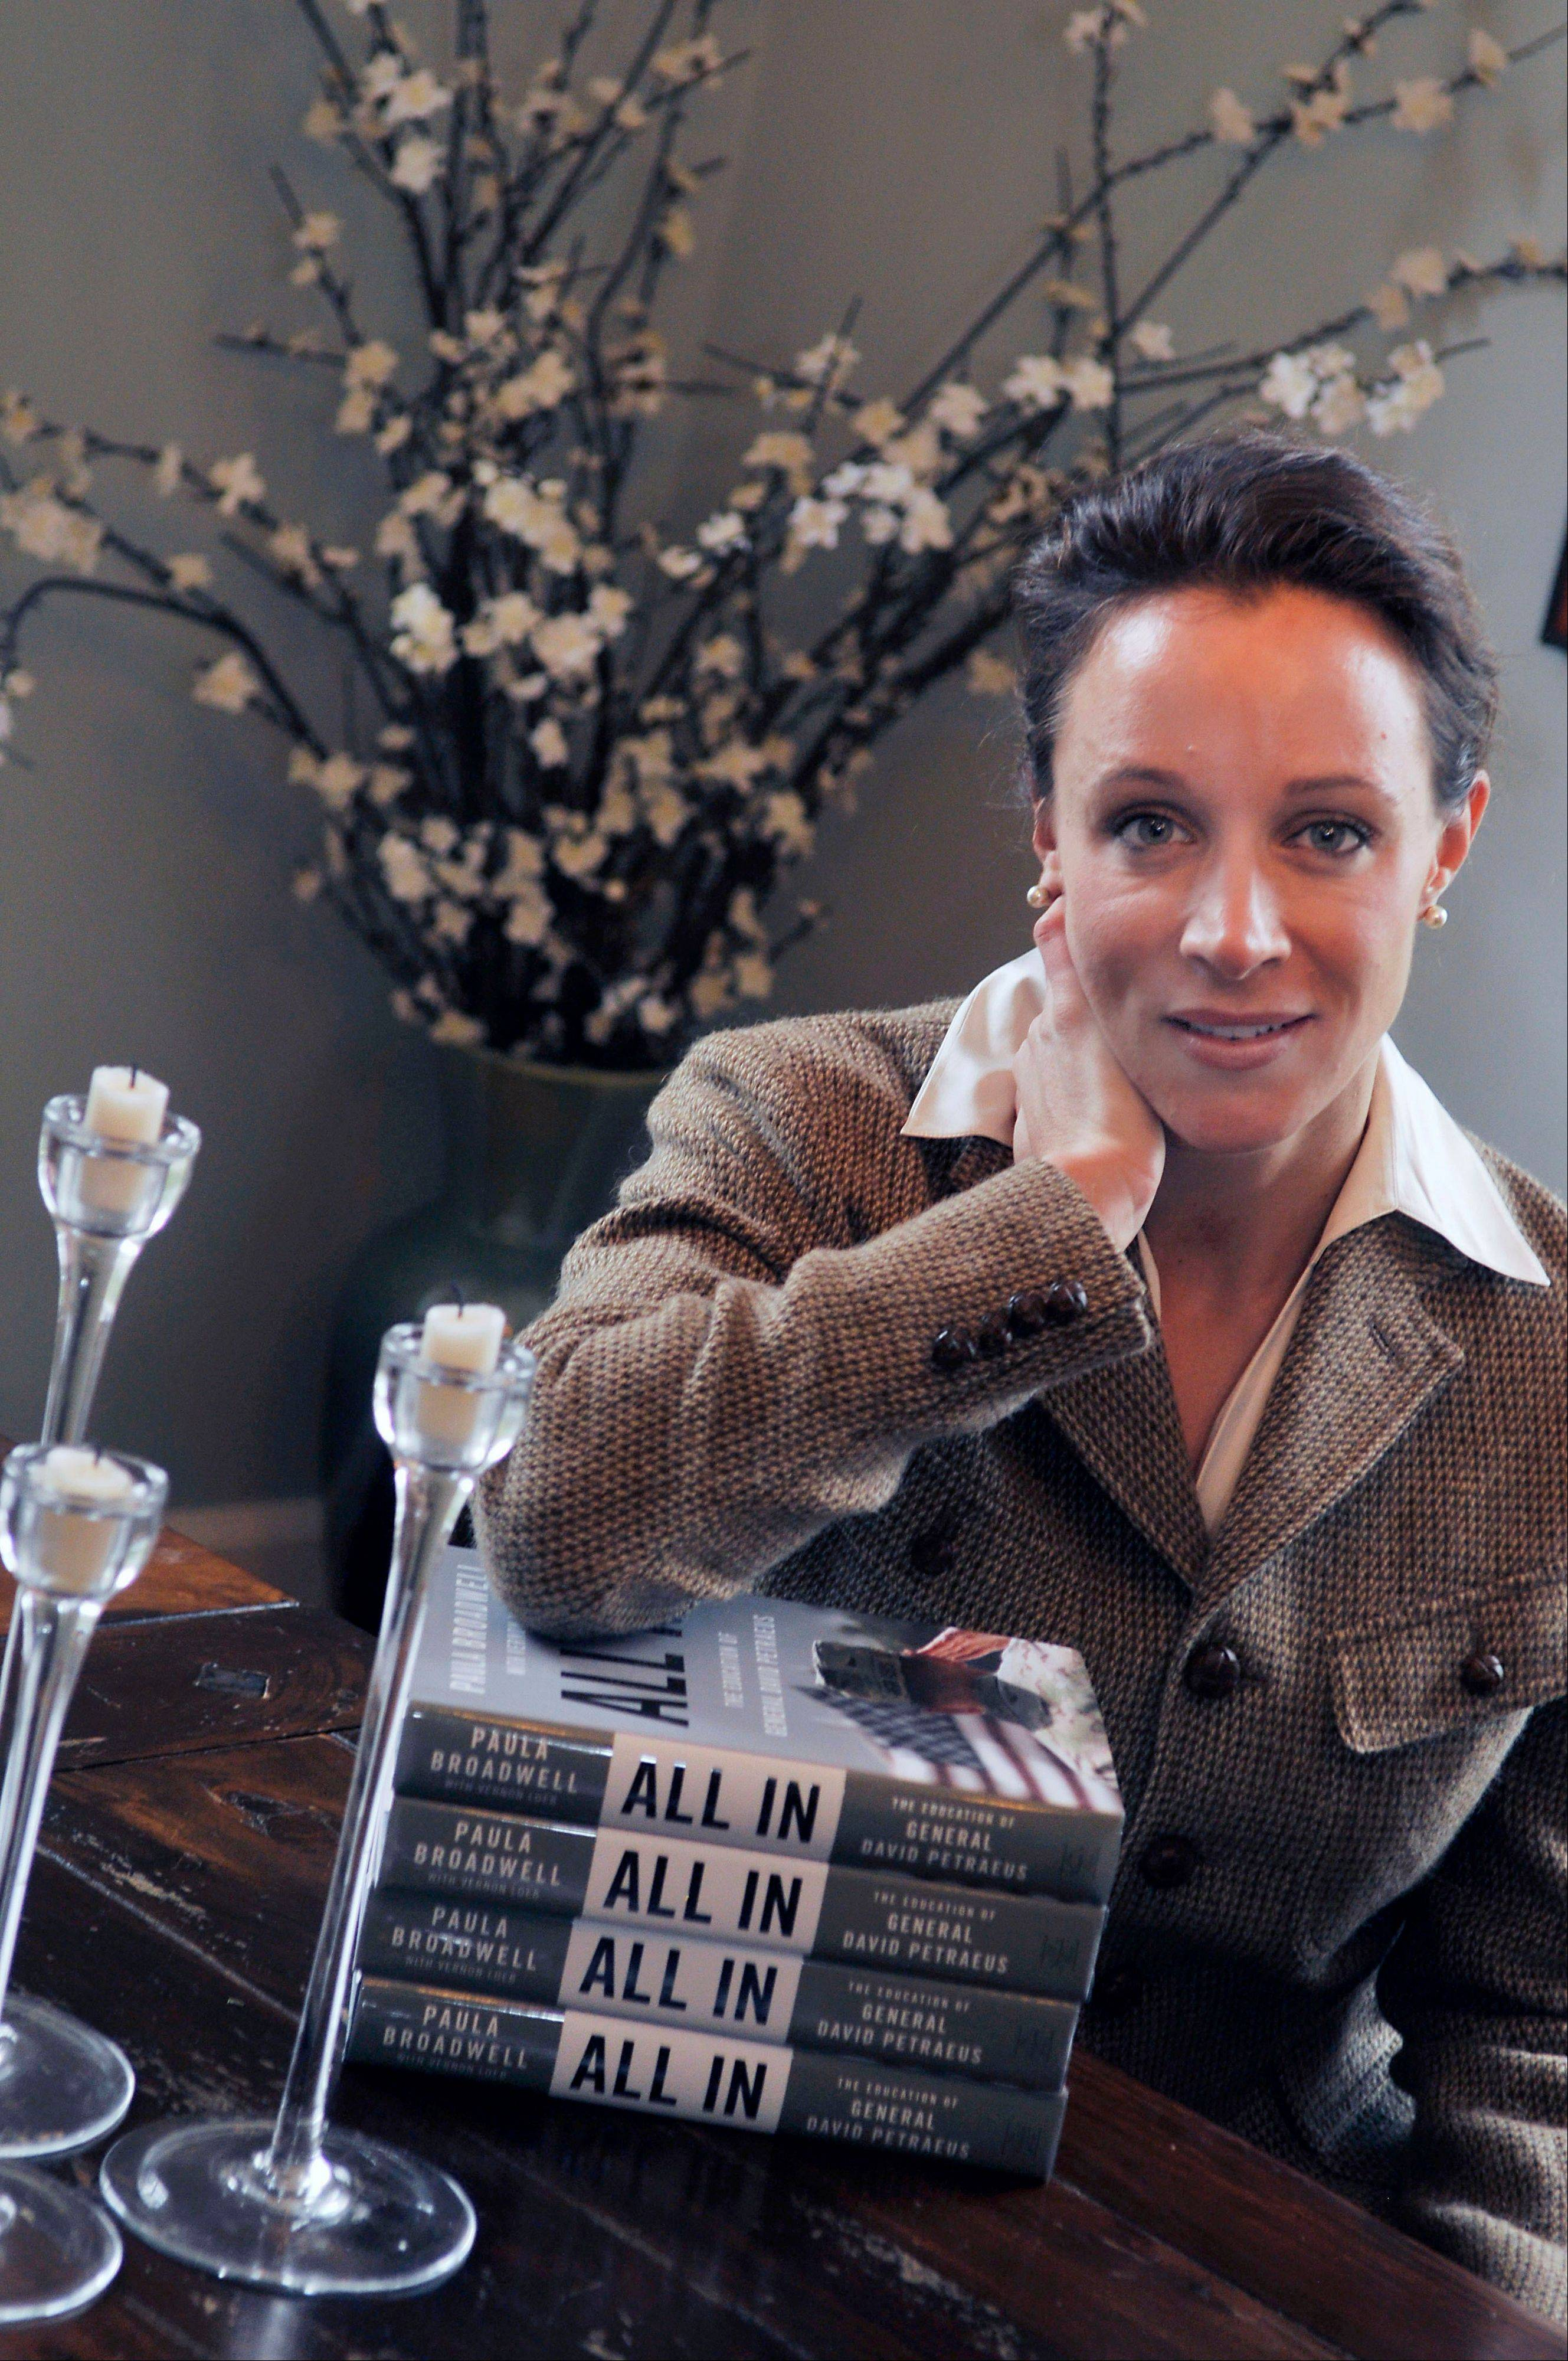 "$PHOTOCREDIT_ON$$PHOTOCREDIT_OFF$Paula Broadwell, author of the David Petraeus biography ""All In,"" poses for photos in Charlotte, N.C."